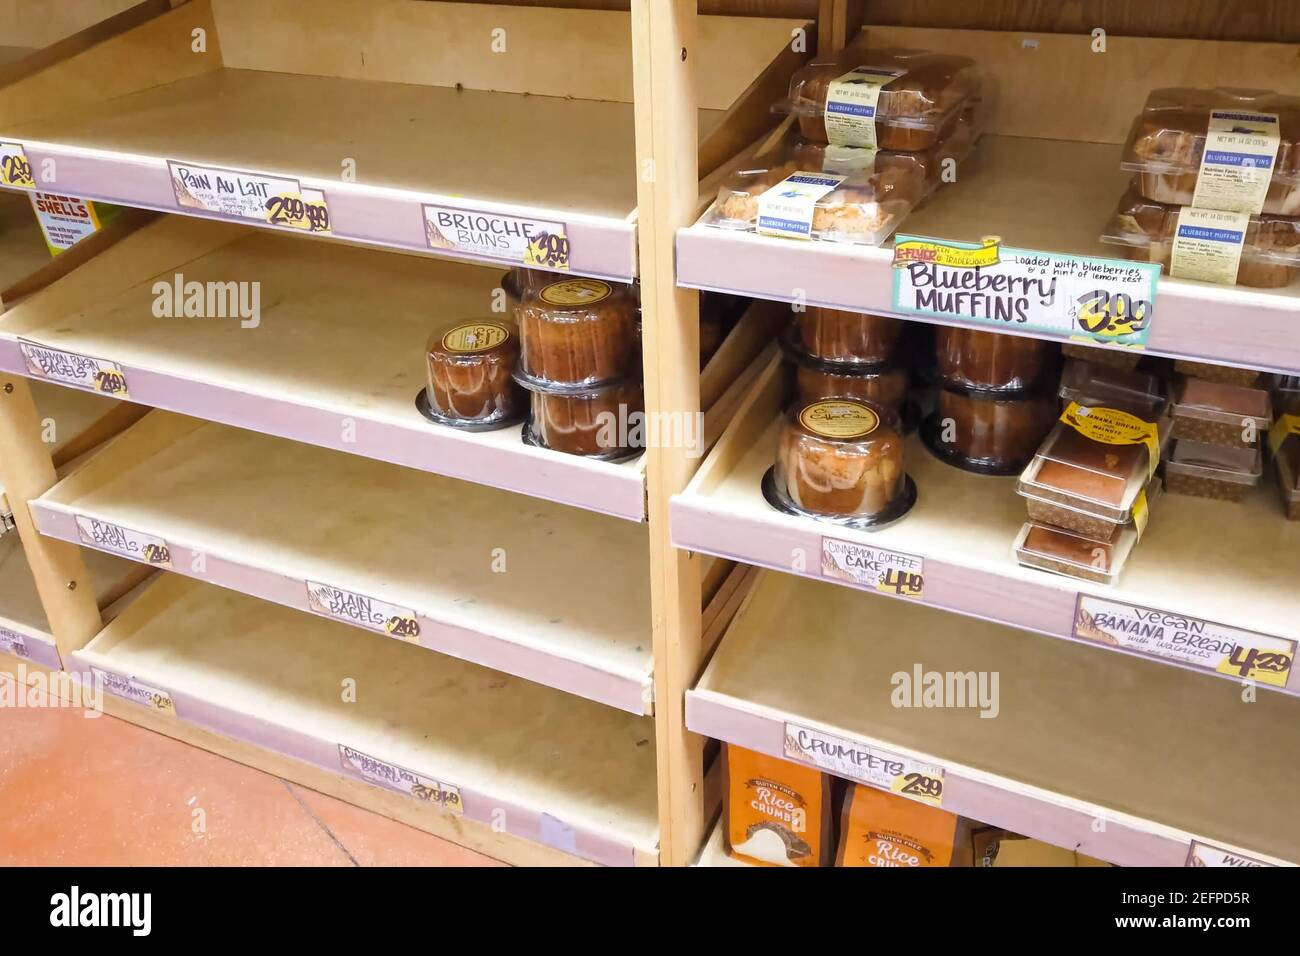 New York, USA - April 2, 2020: Empty shelves with groceries in supermarkets because of the panic from the coronavirus. Stock Photo